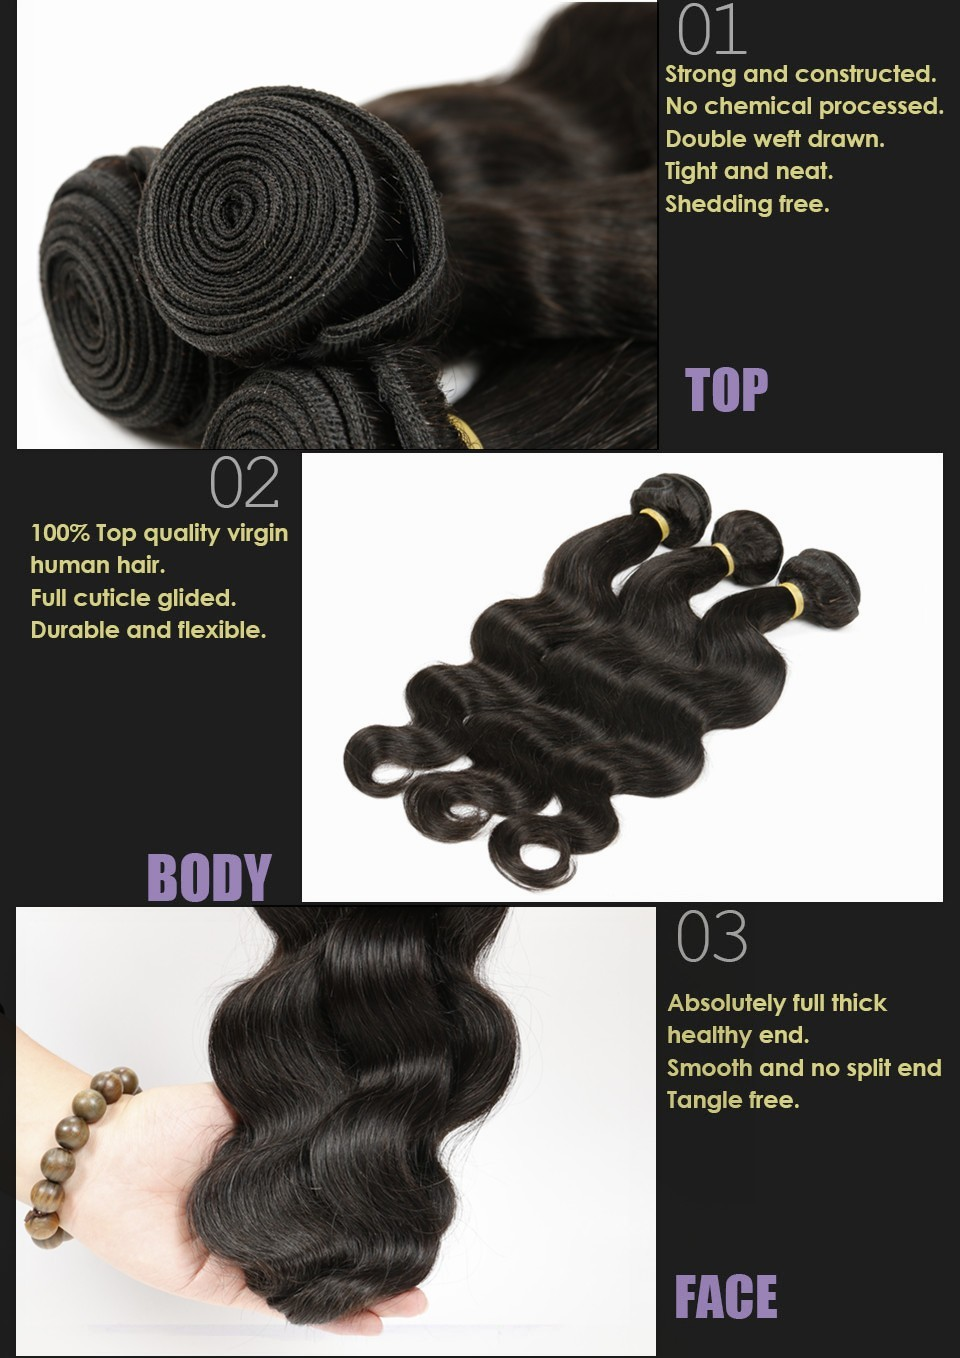 Malaysian Virgin Hair Body Wave cheap bundles 3 Bundles Unprocessed Human Hair Malaysian Body Wave Unprocessed Human Hair body wave 3 bundles (3)